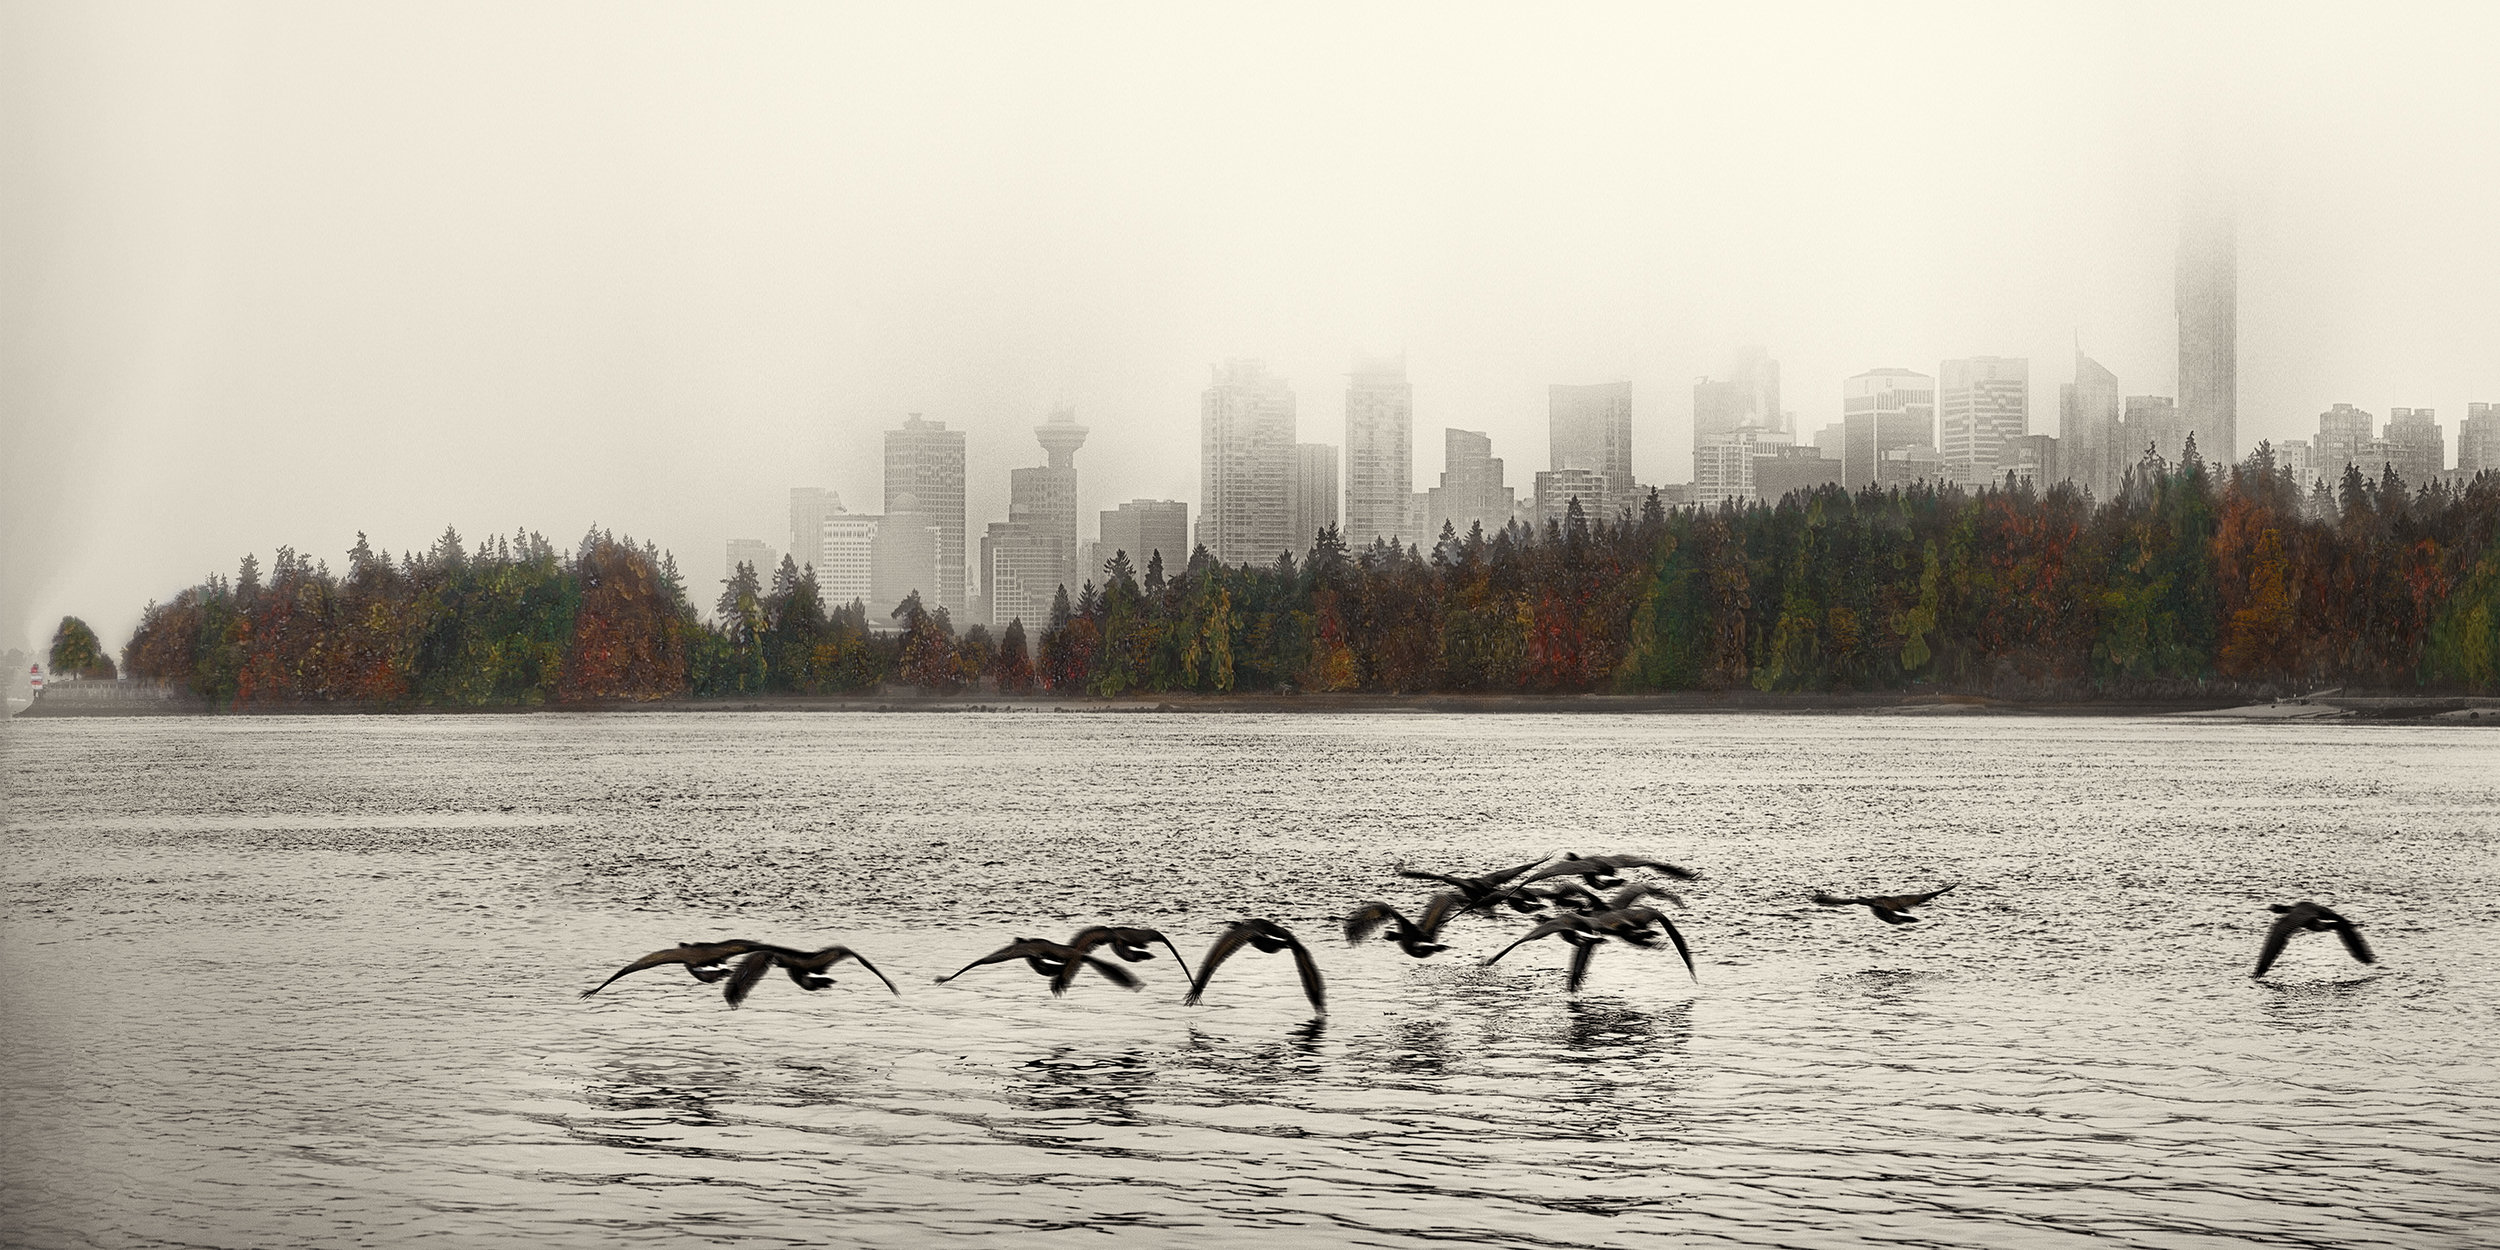 Skyline with Geese